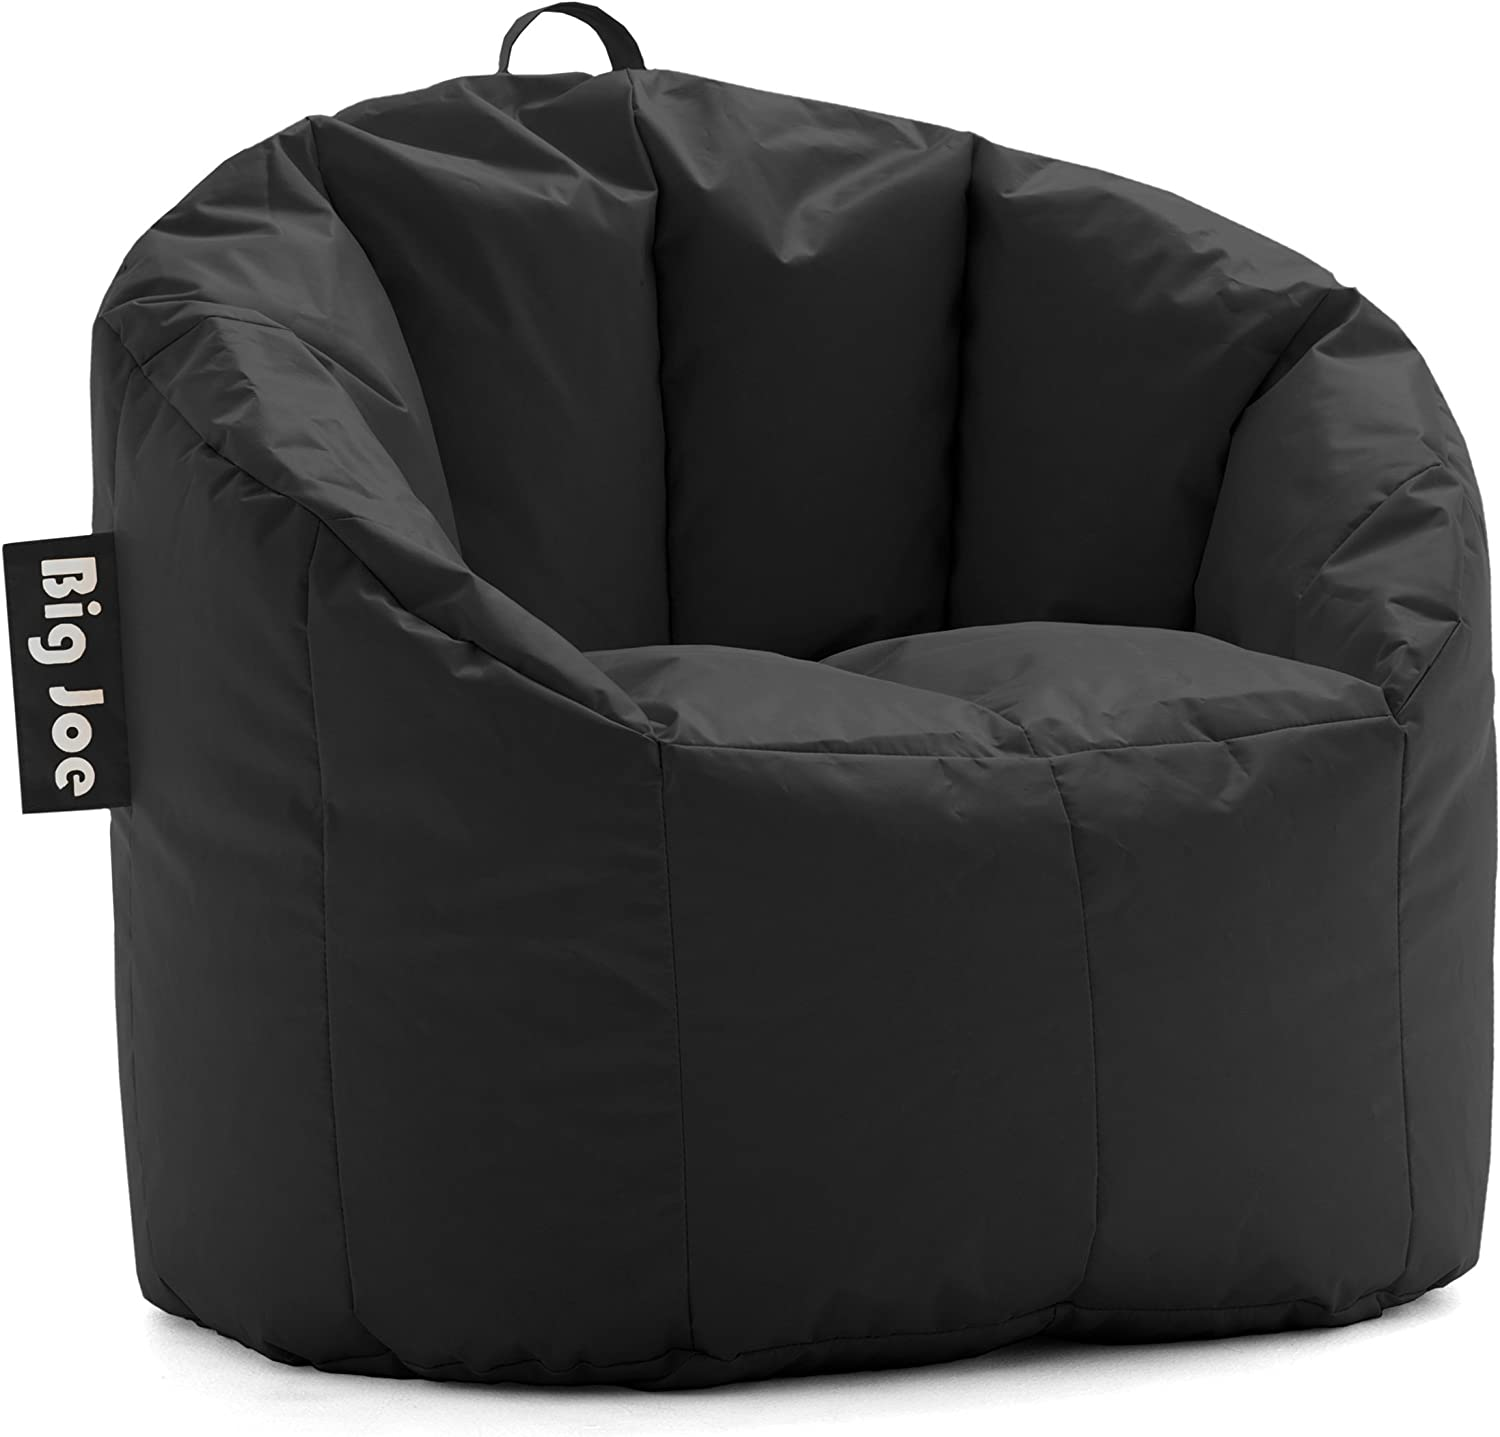 Comfort Research Milano Bean Bag Chair, Stretch Limo Black Smartmax